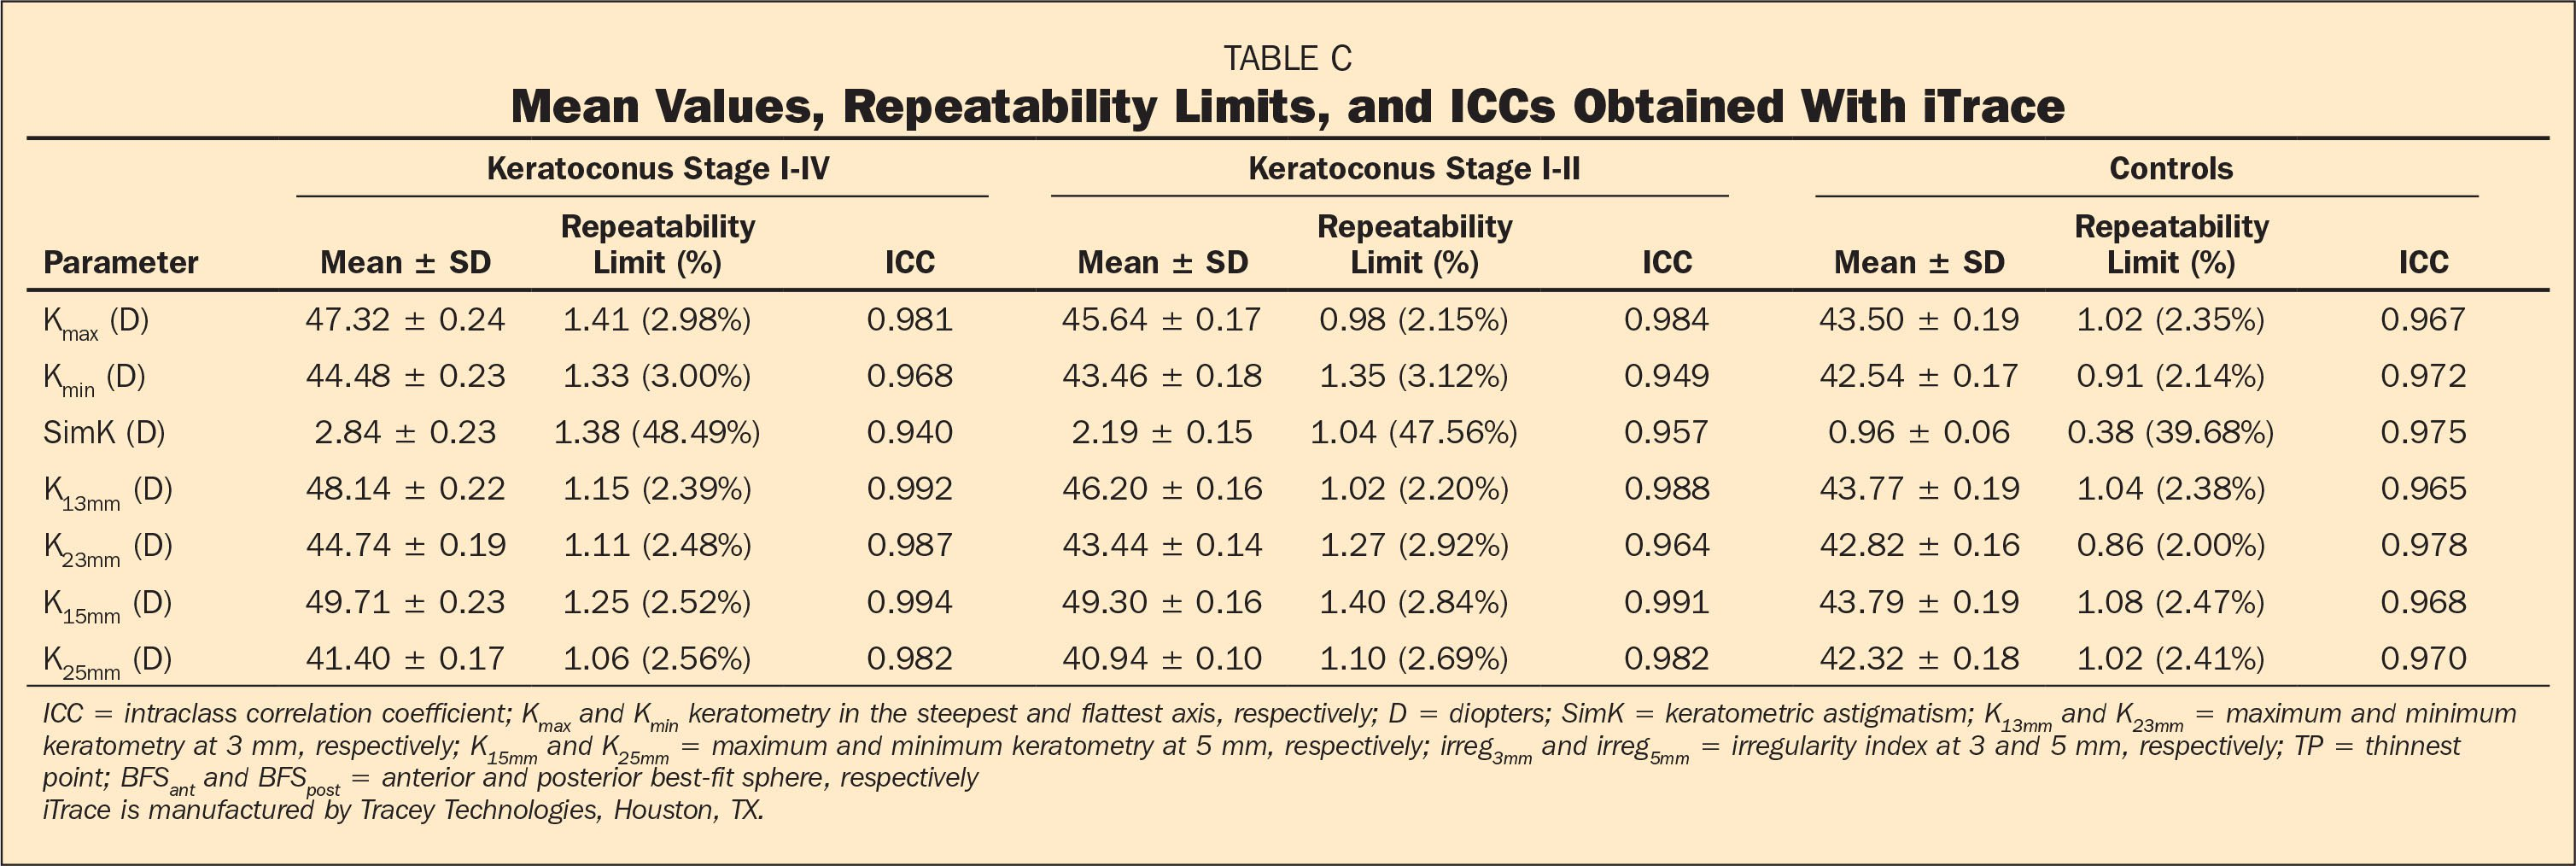 Mean Values, Repeatability Limits, and ICCs Obtained With iTrace